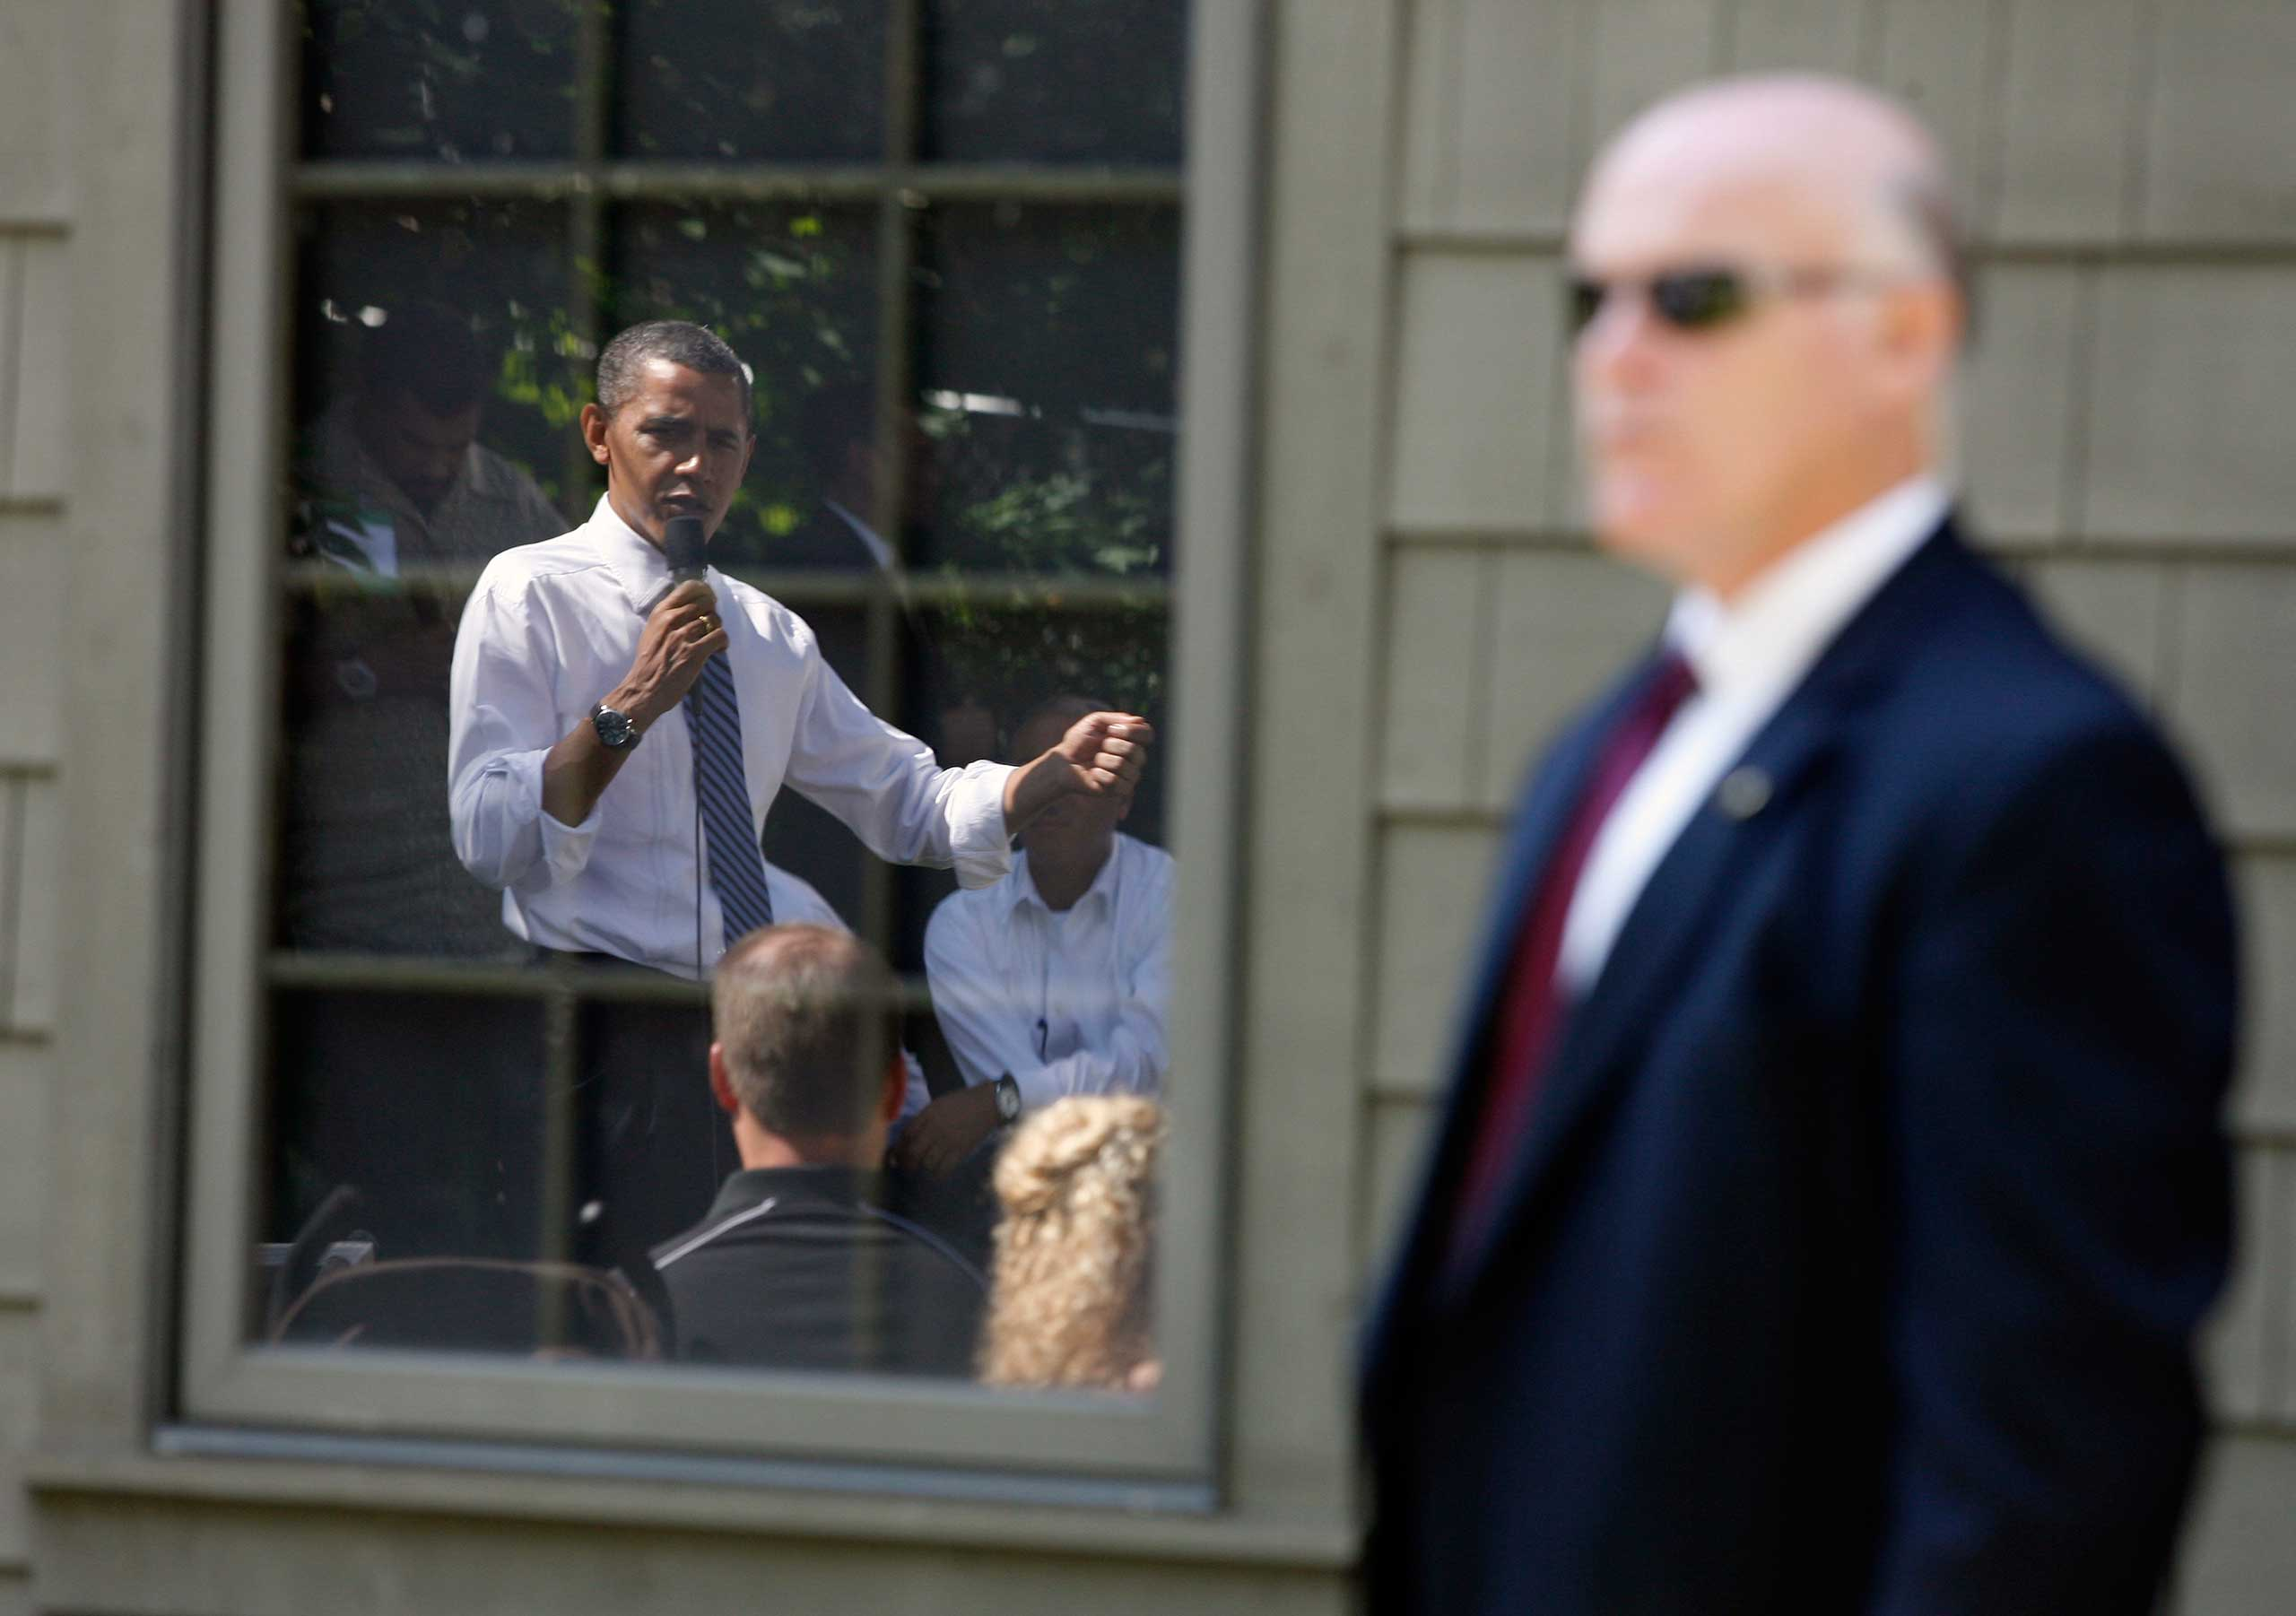 Clancy in the foreground, as Obama is reflected in a garage window in a backyard at the Weithman family home on Aug 18, 2010 in Columbus, Ohio.